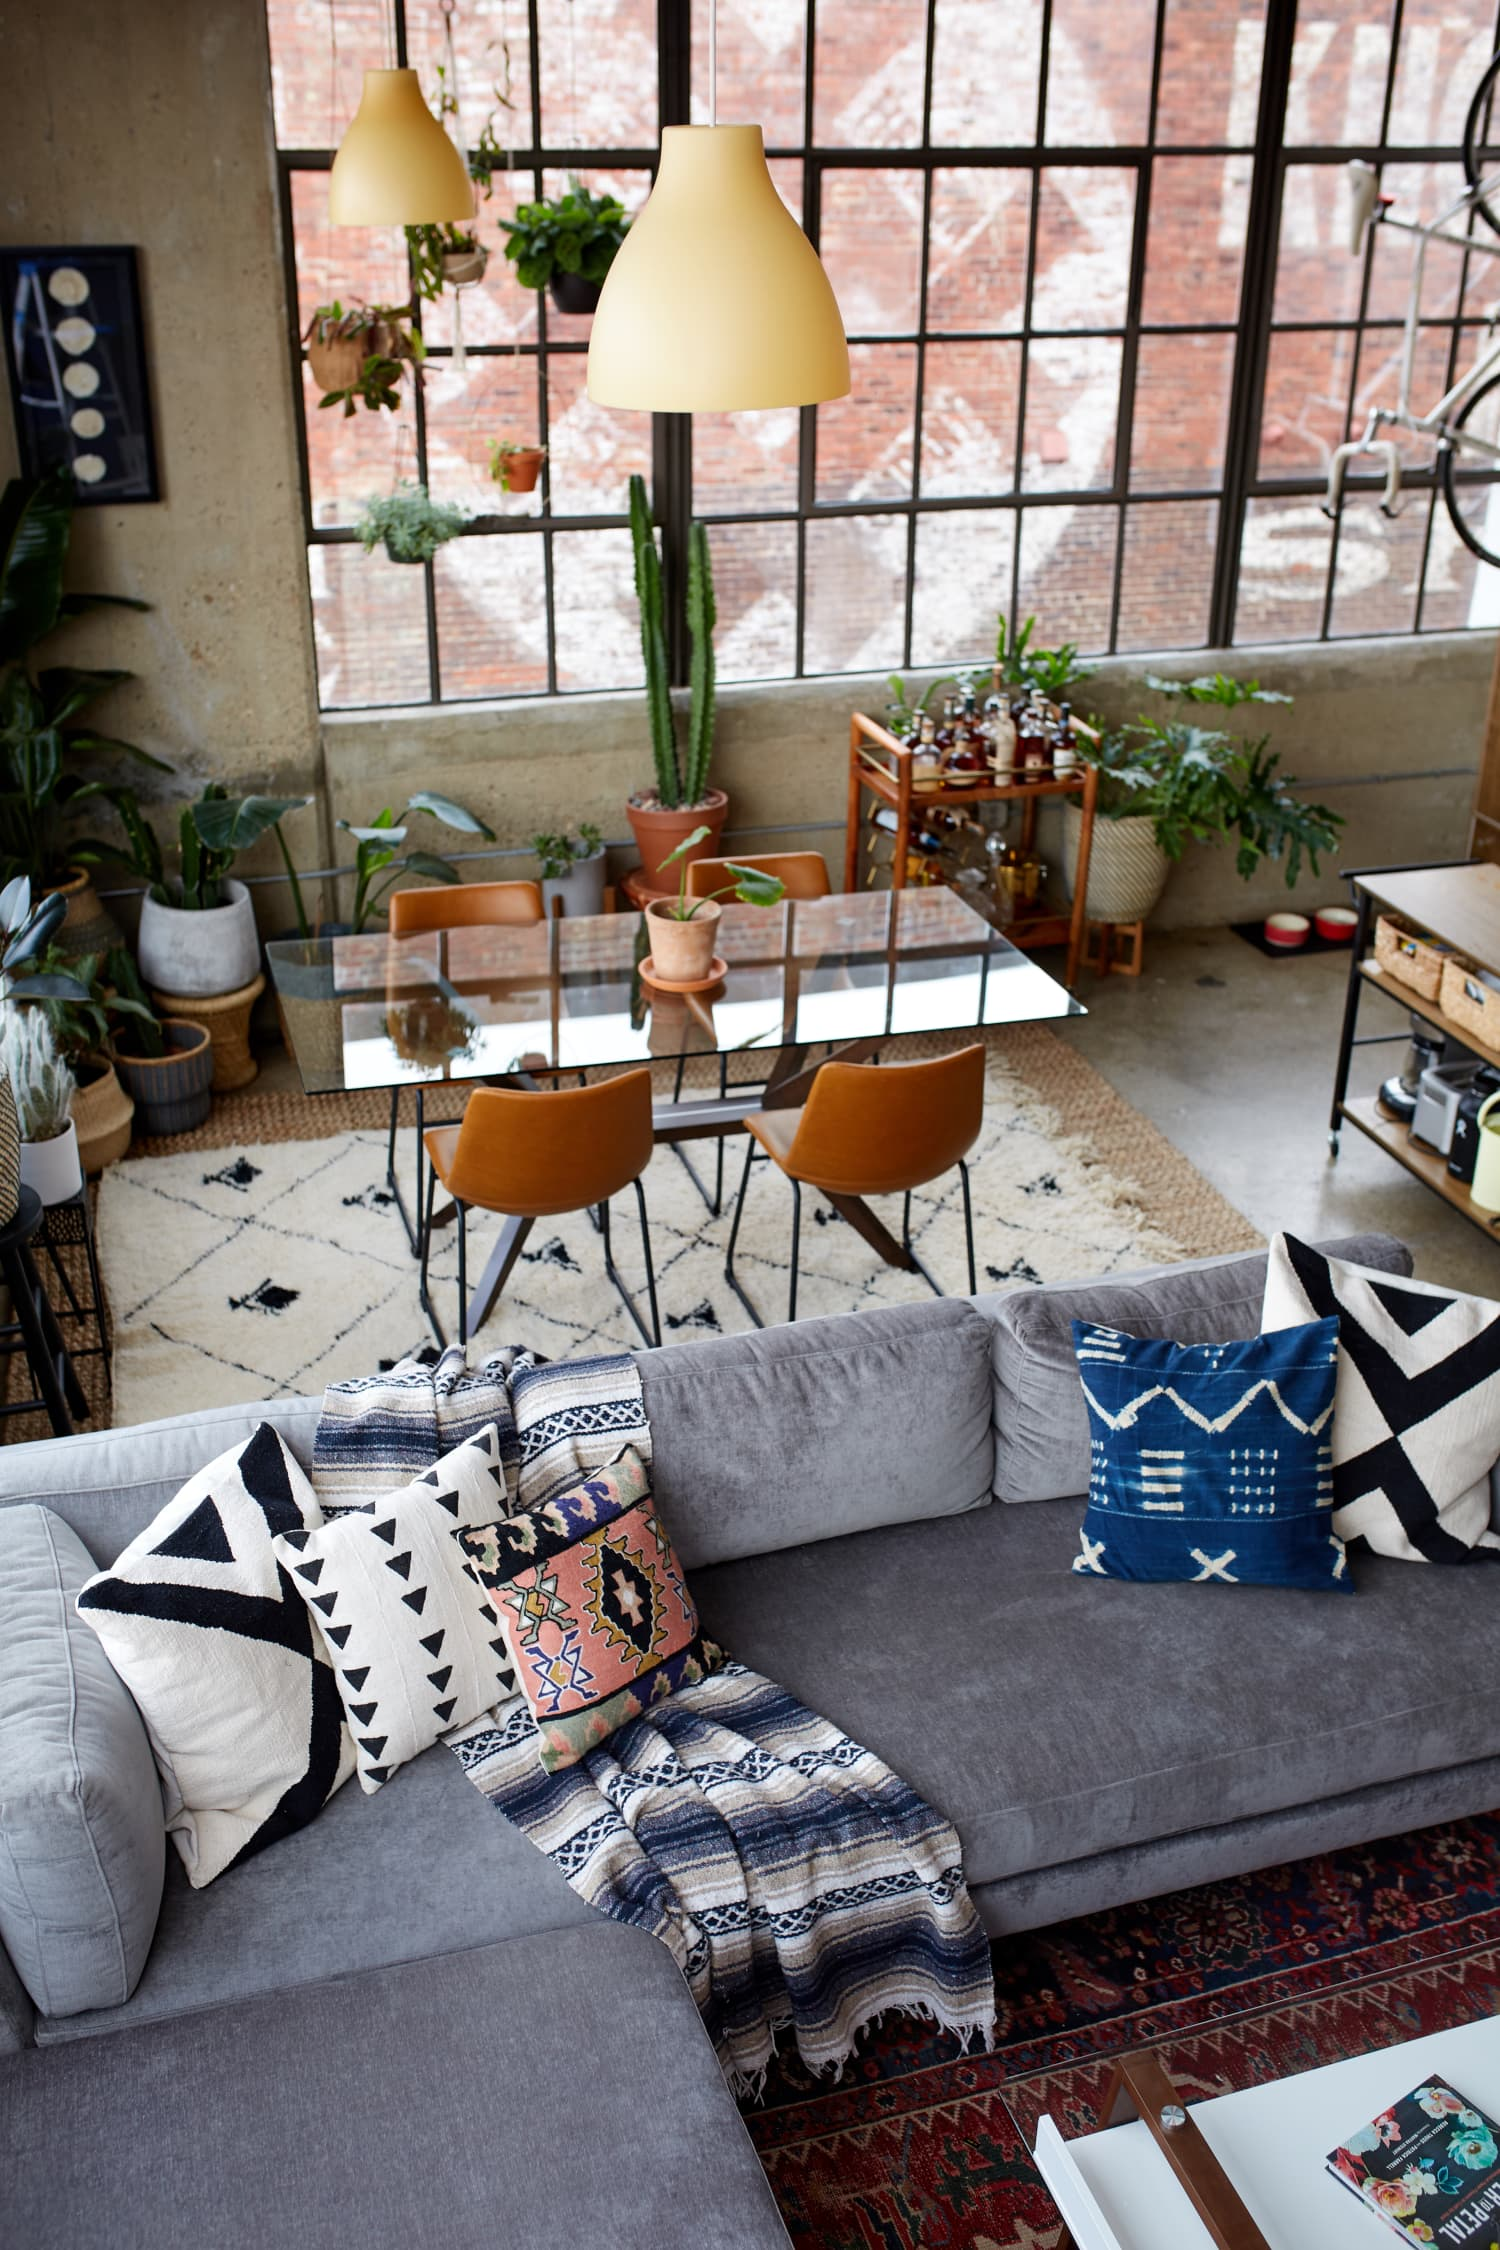 Get the Look: A Boho Knoxville Pad